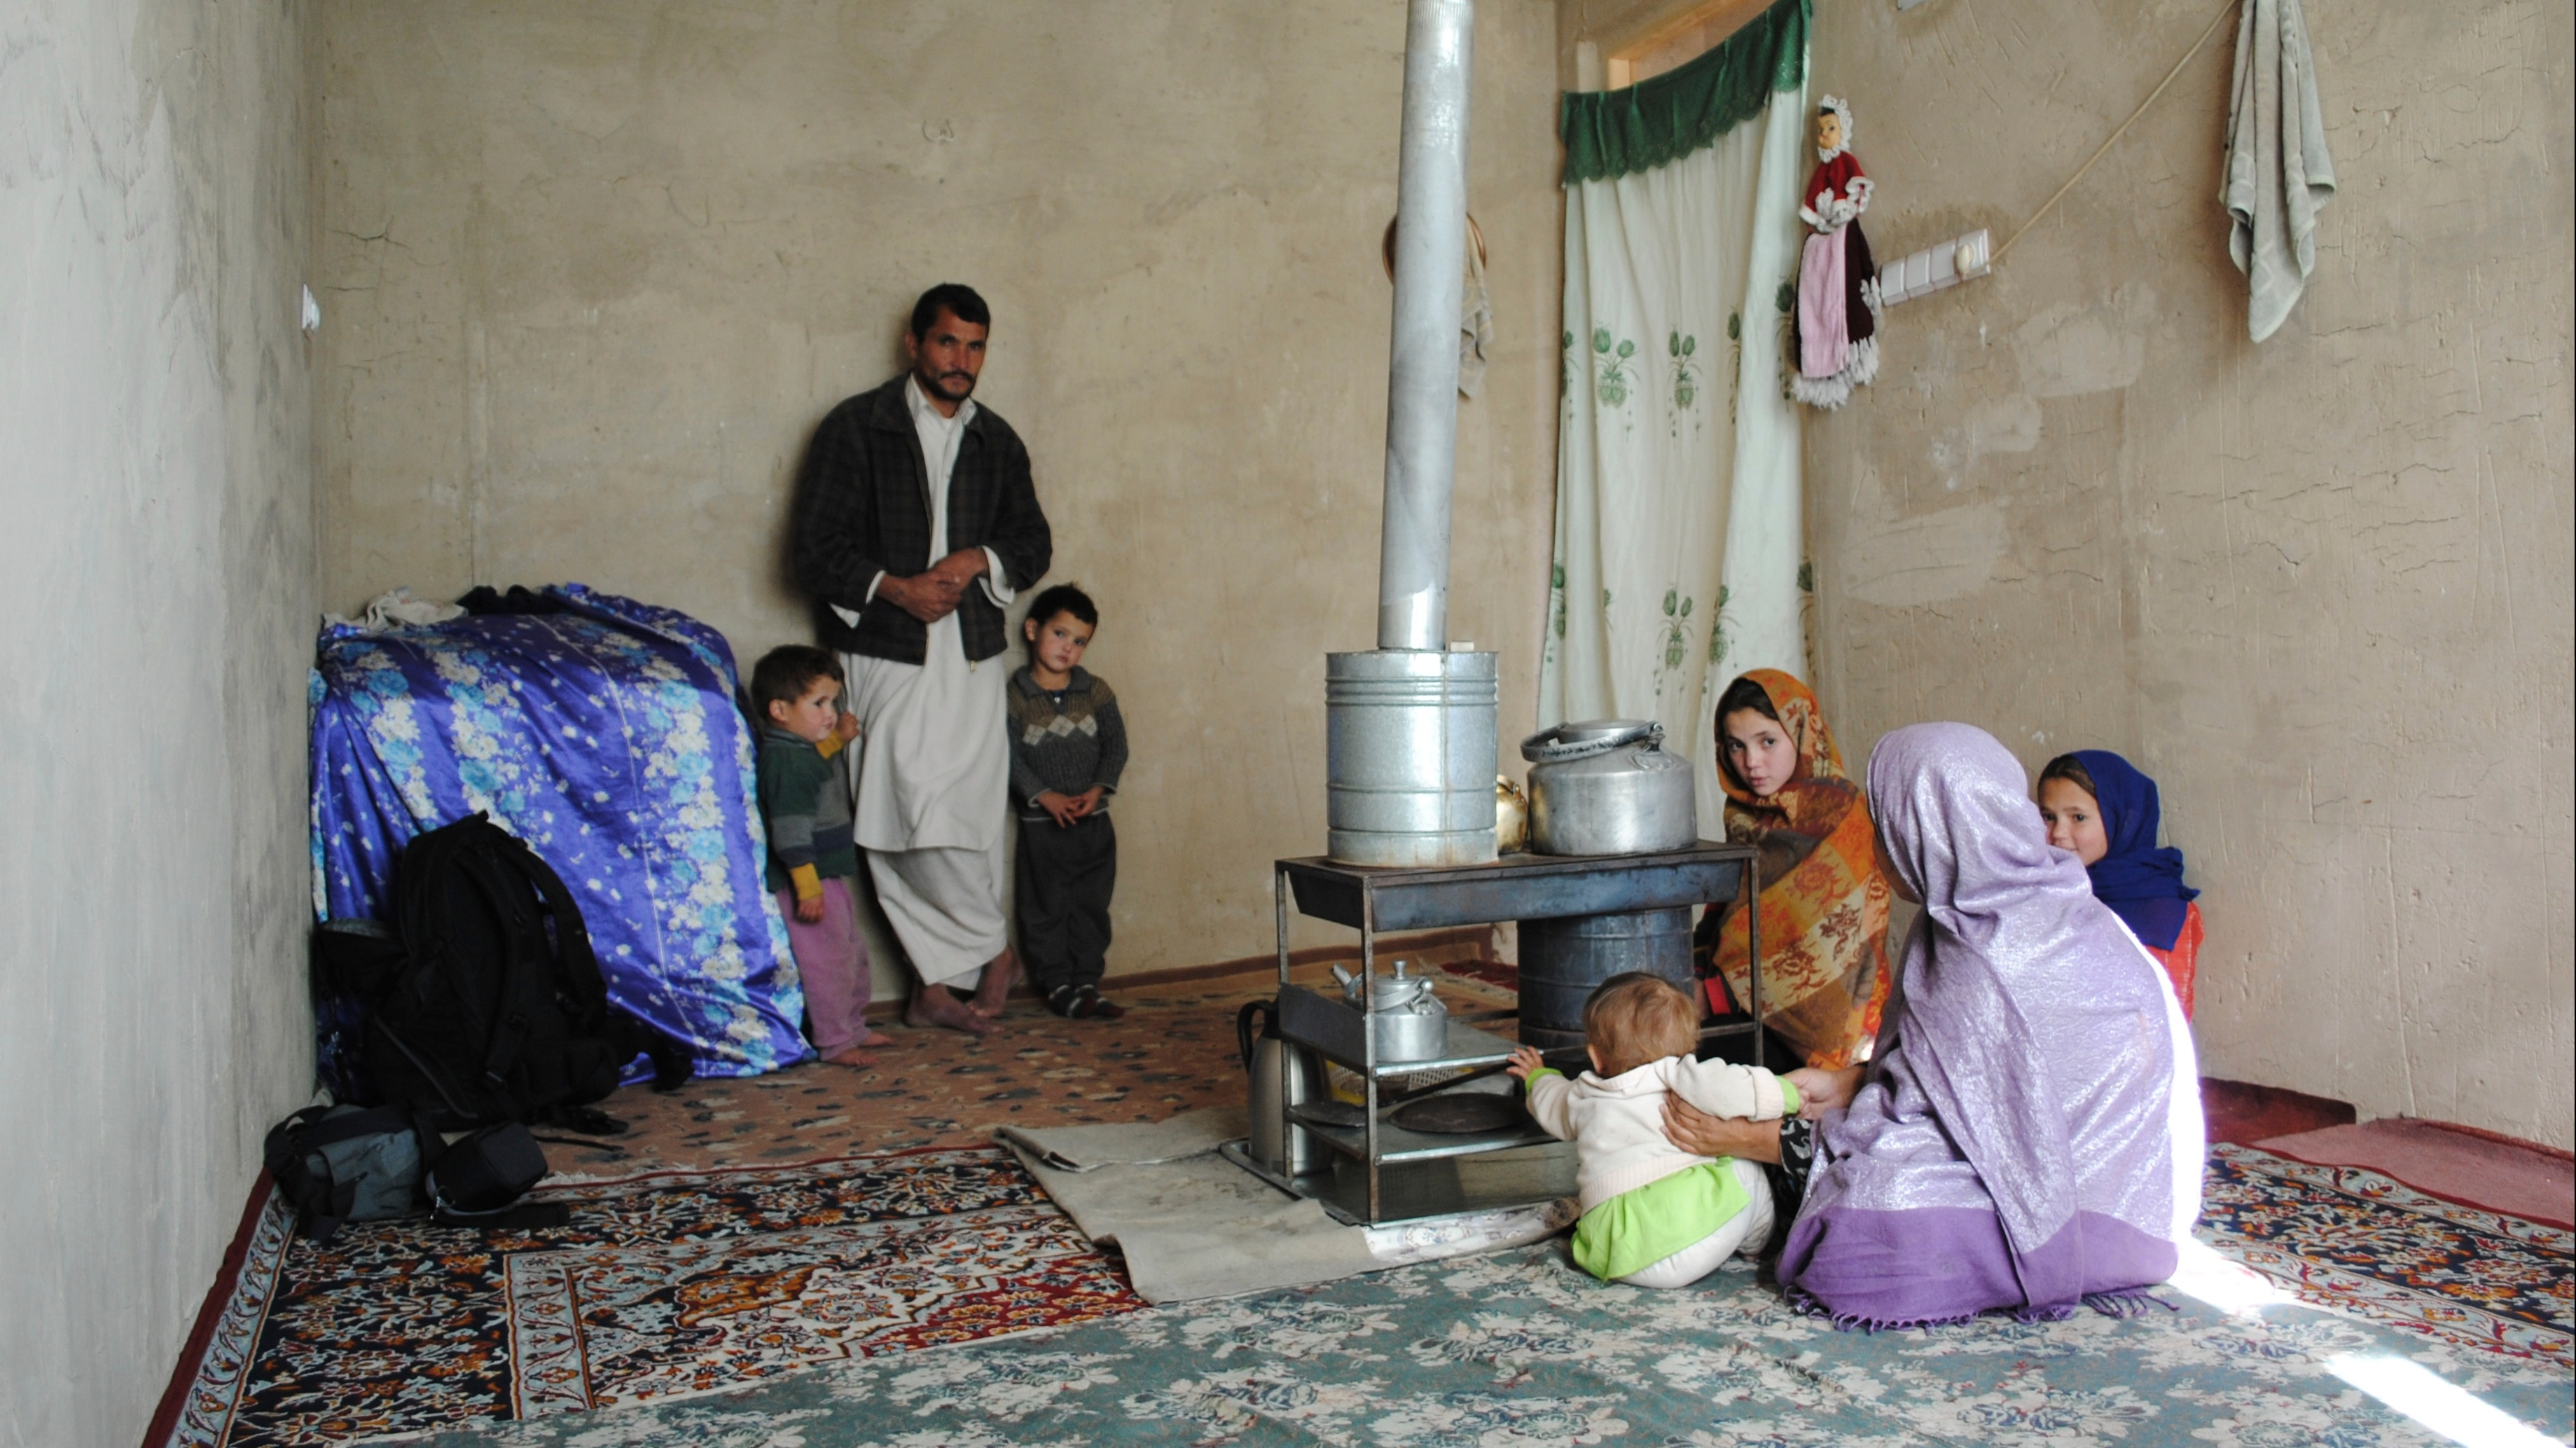 A typical Afghan family living in the capital Kabul. The children are malnourished and have health problems. The father is a laborer, but has trouble finding work and money to feed his family. They have accumulated a large sum of debt. (2011)